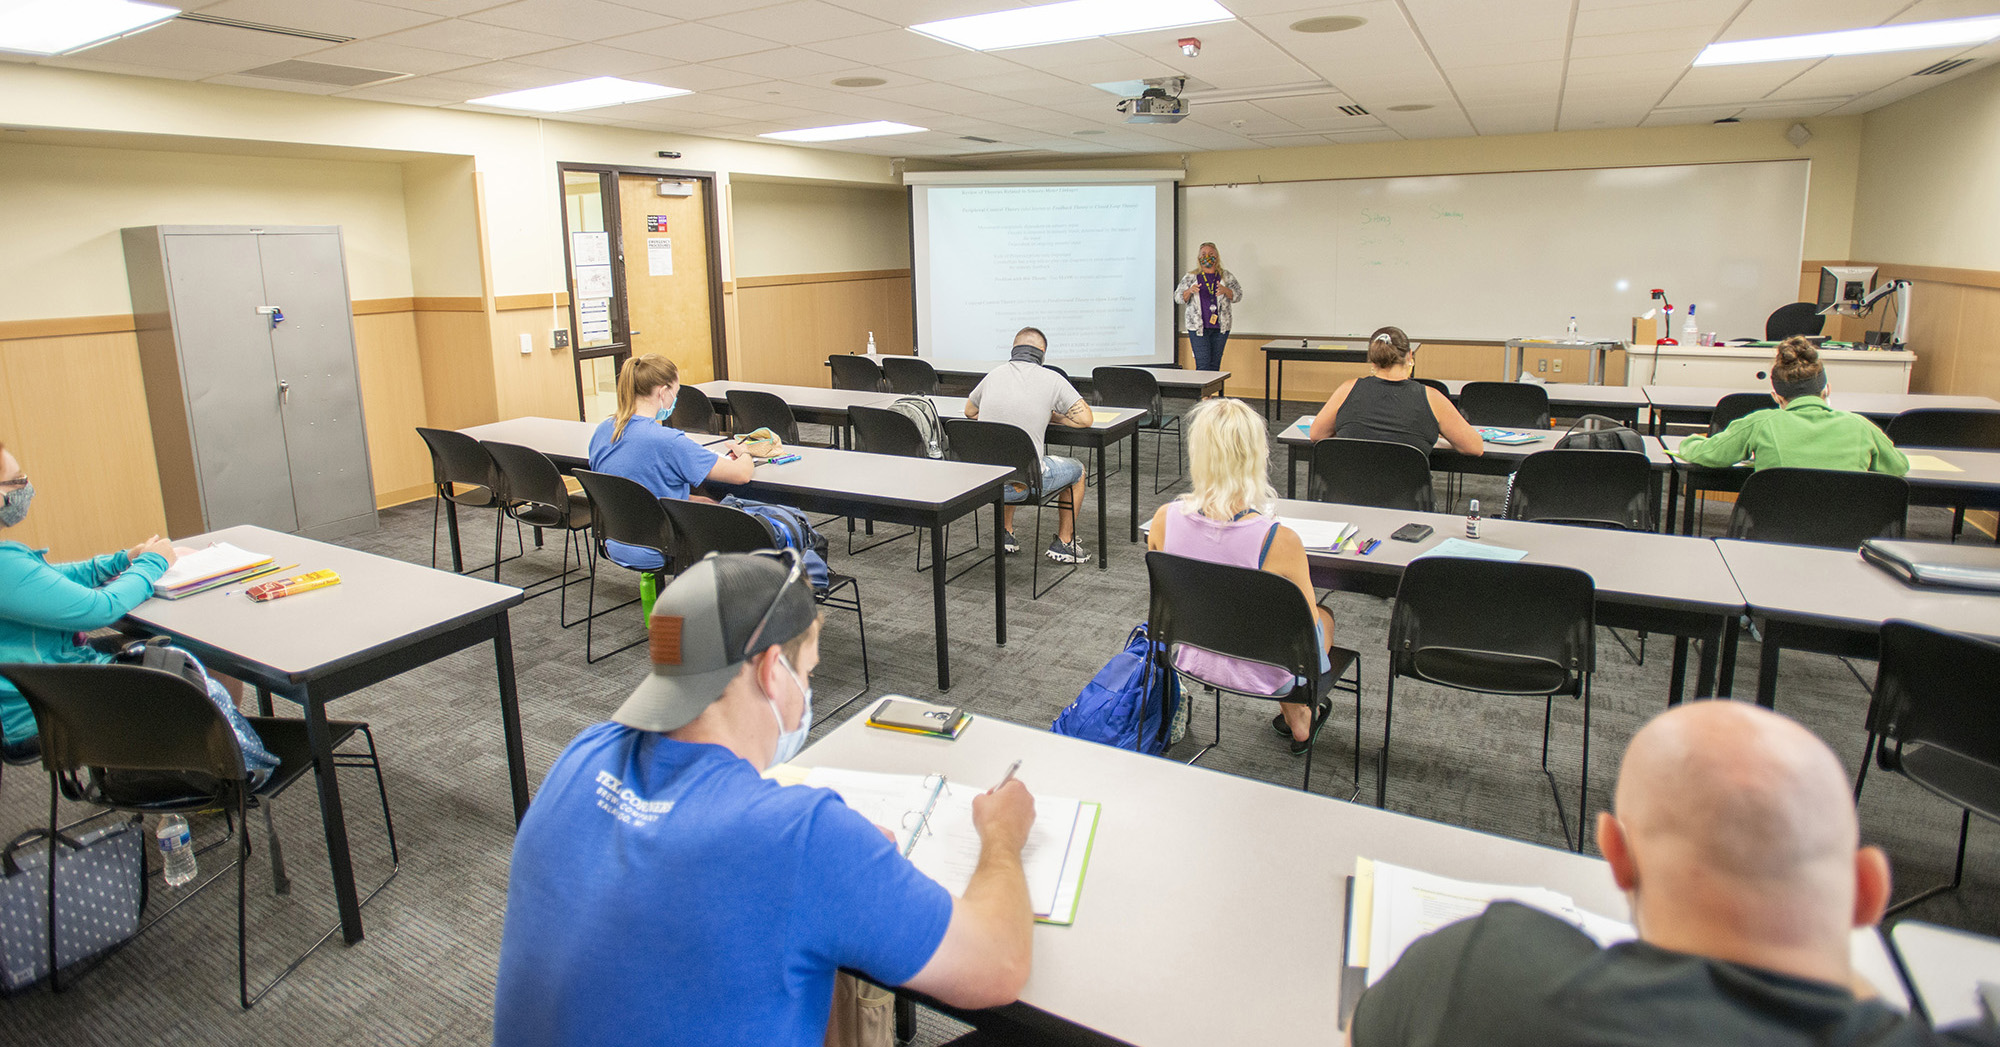 Students listen to an instructor during class.